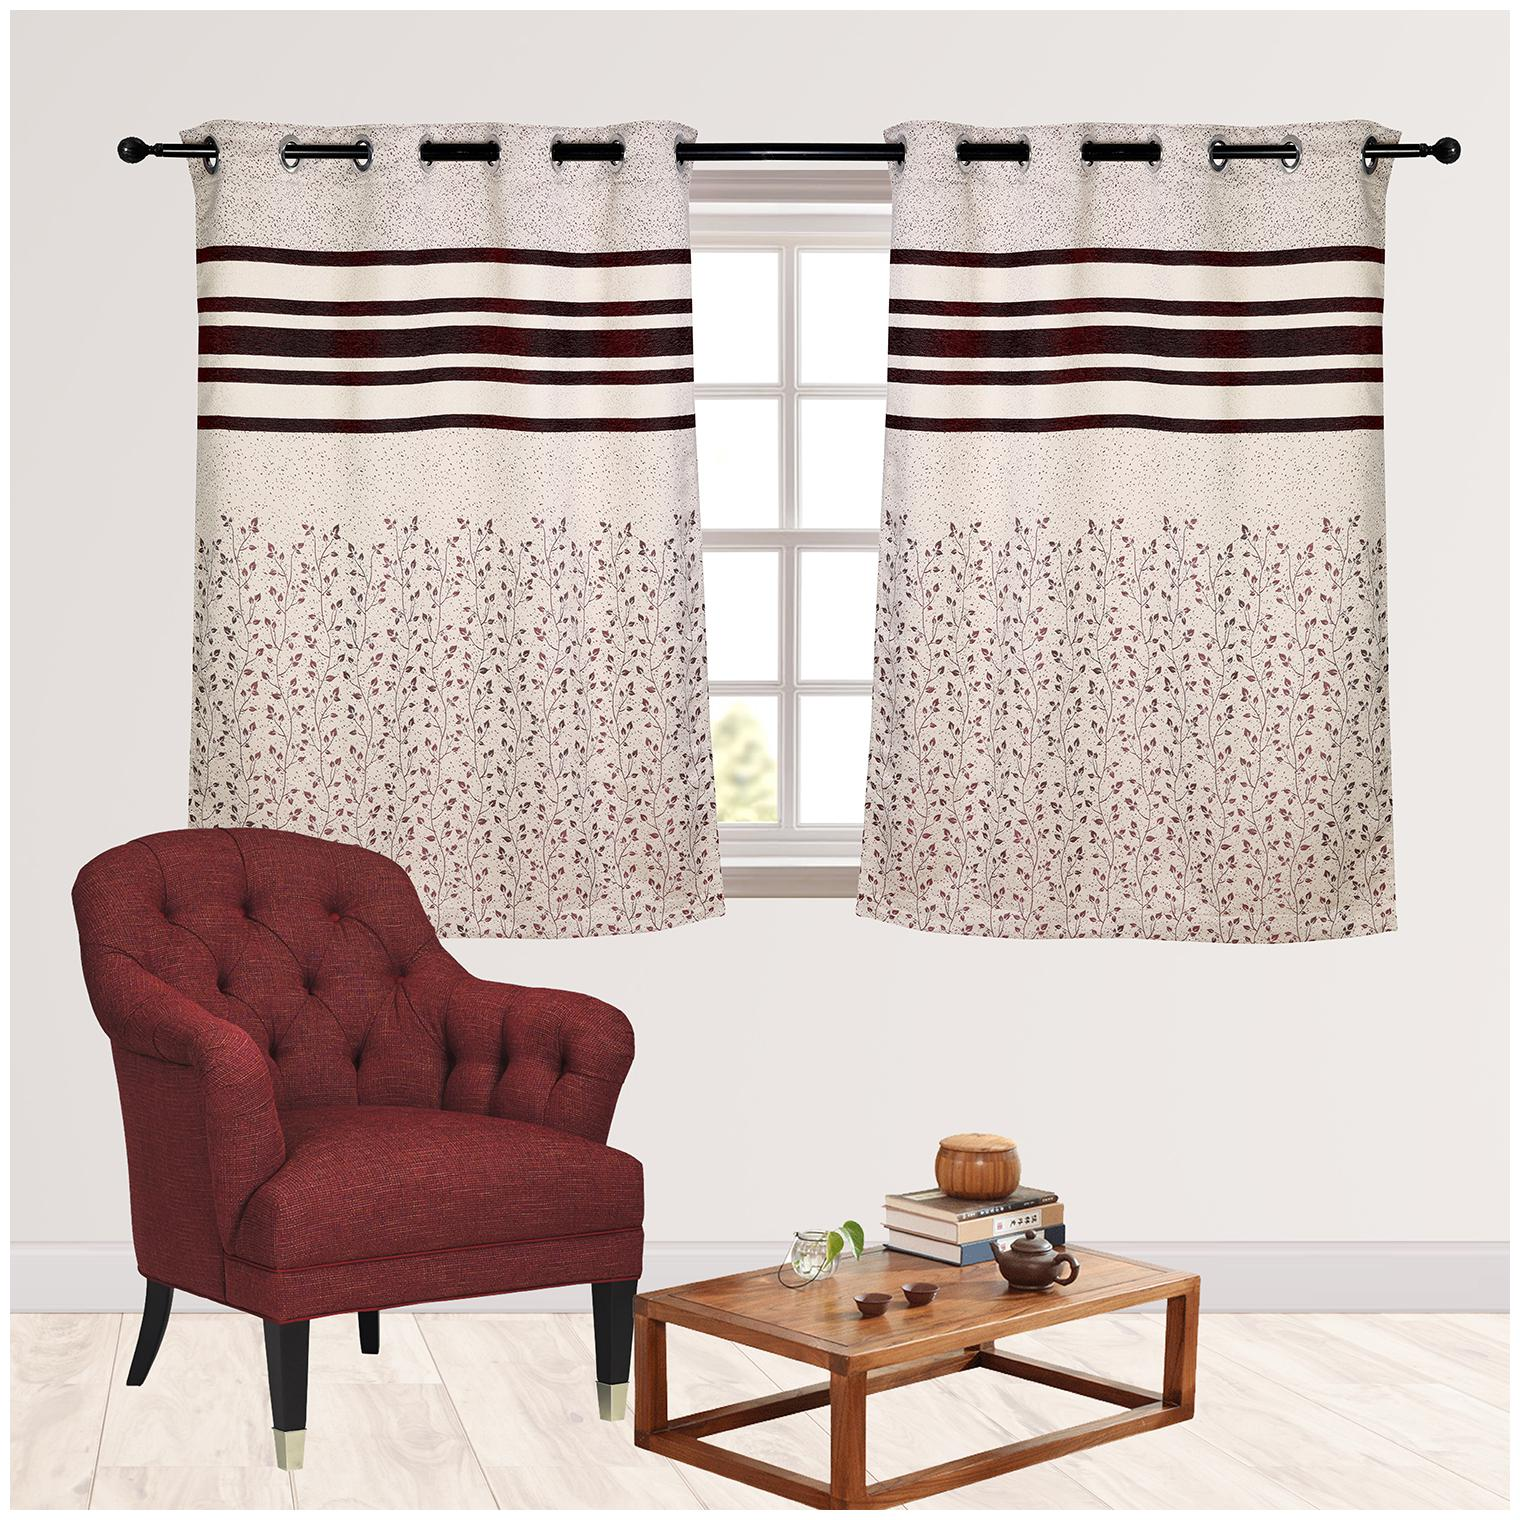 R S Furnishing Polyester Window Blackout Wine & White Regular Curtain (...